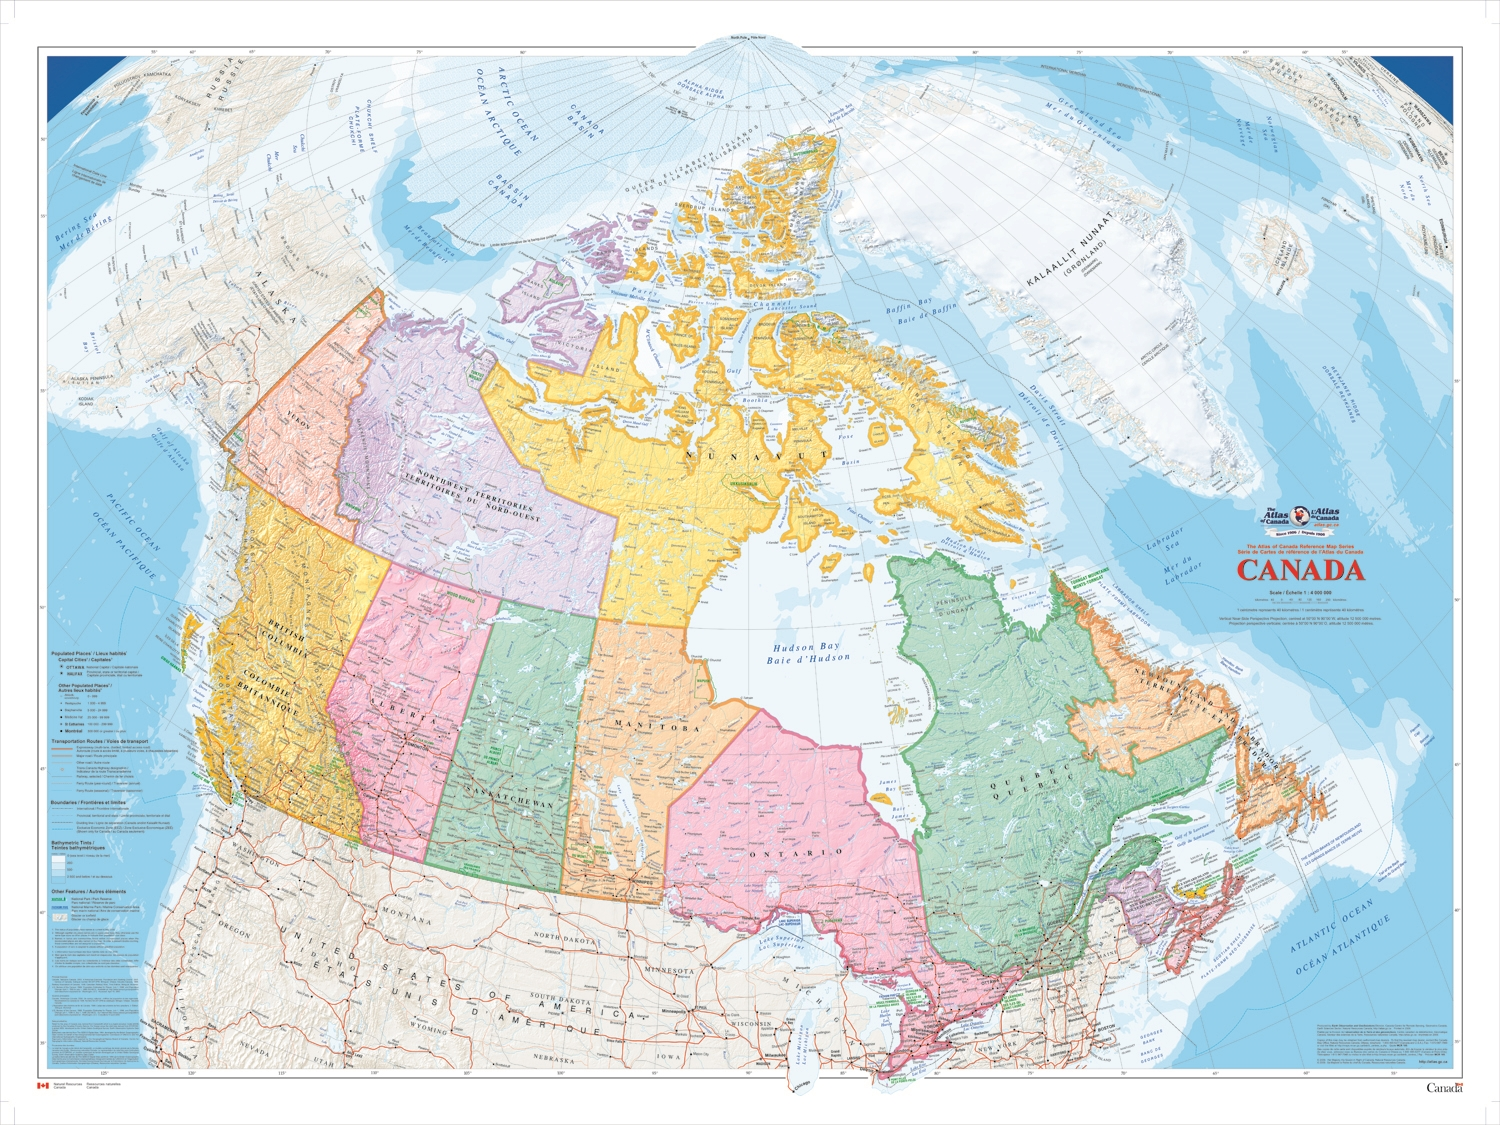 Wall Map Canada Canada Political Natural Resources wall map   XL. The largest of